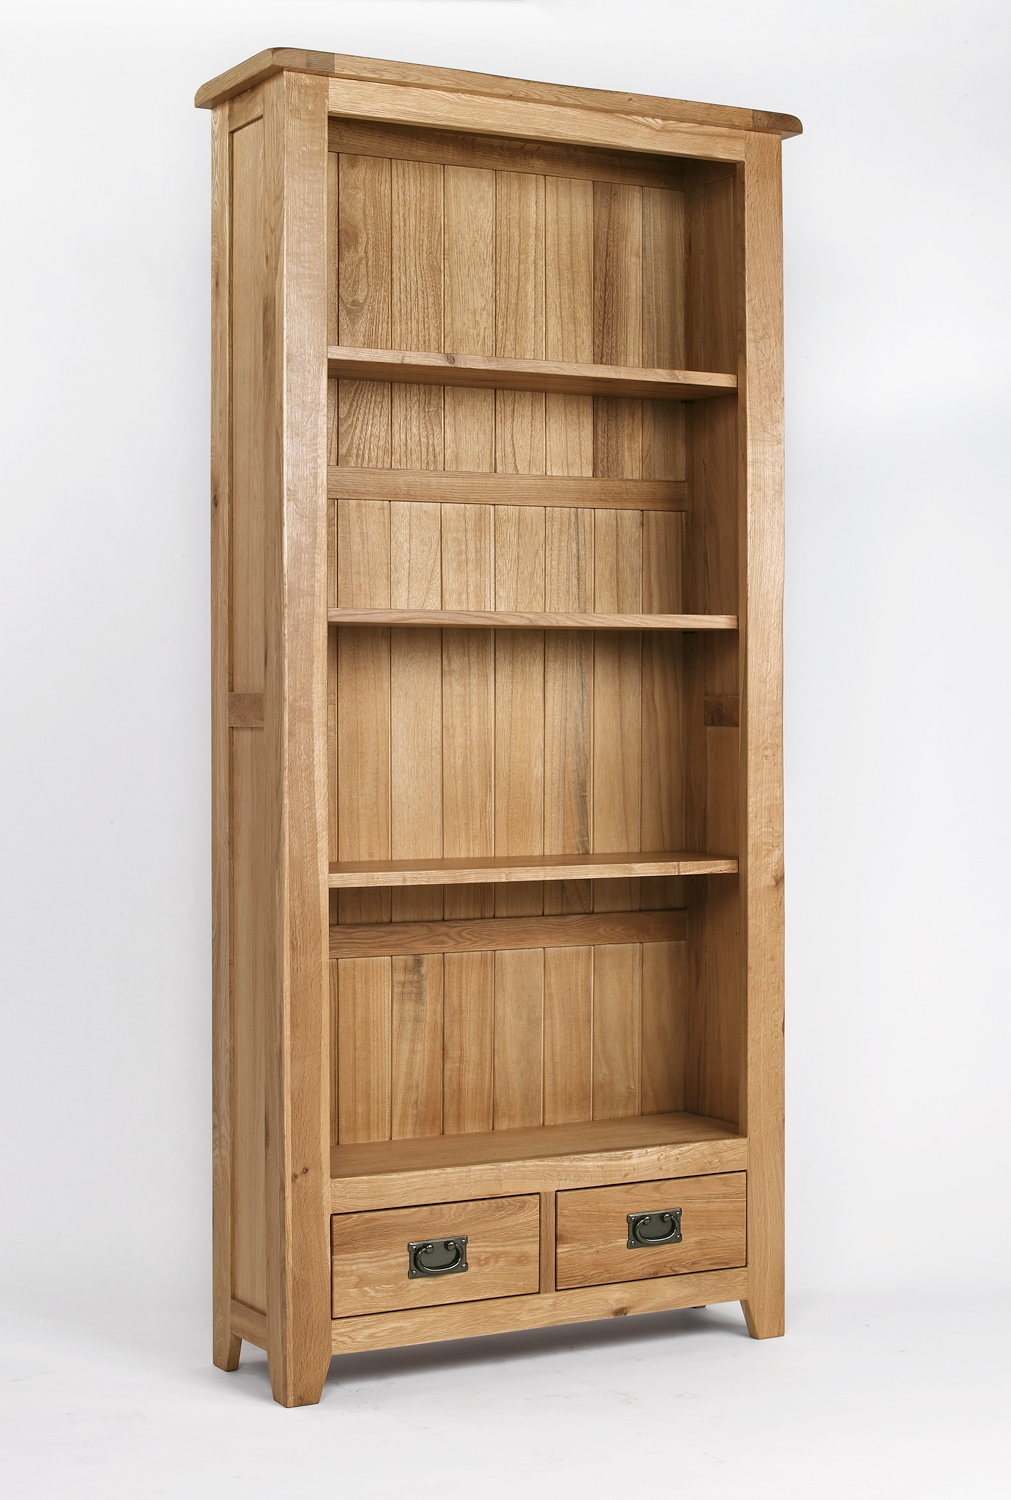 Wooden Bookcases bookcases ideas: hardwood bookcases best ever oak OEQQQBK